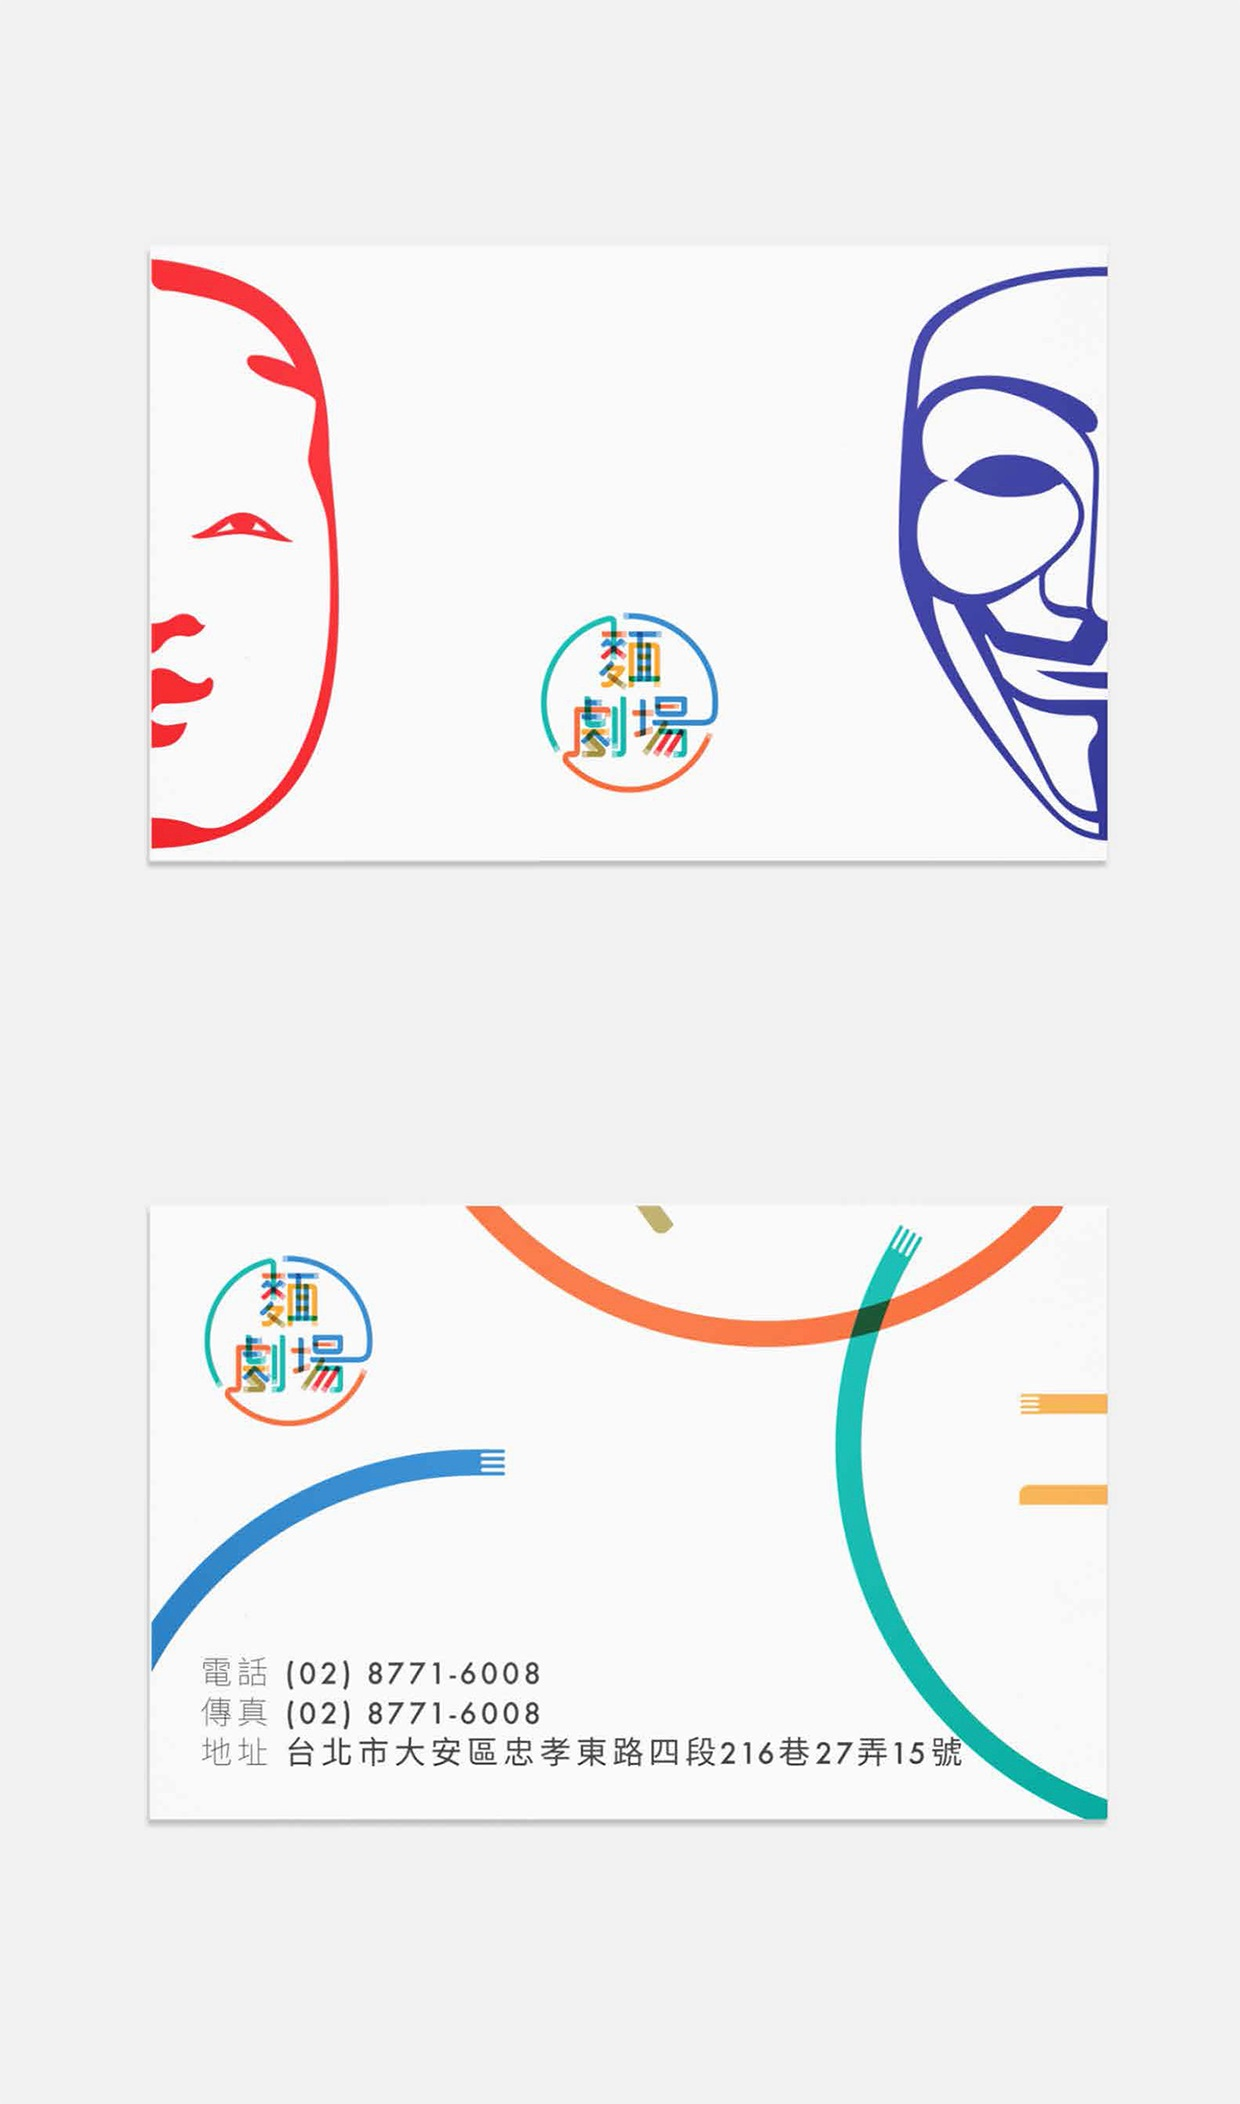 Nuddle-Theater-branding-hisheji (4)